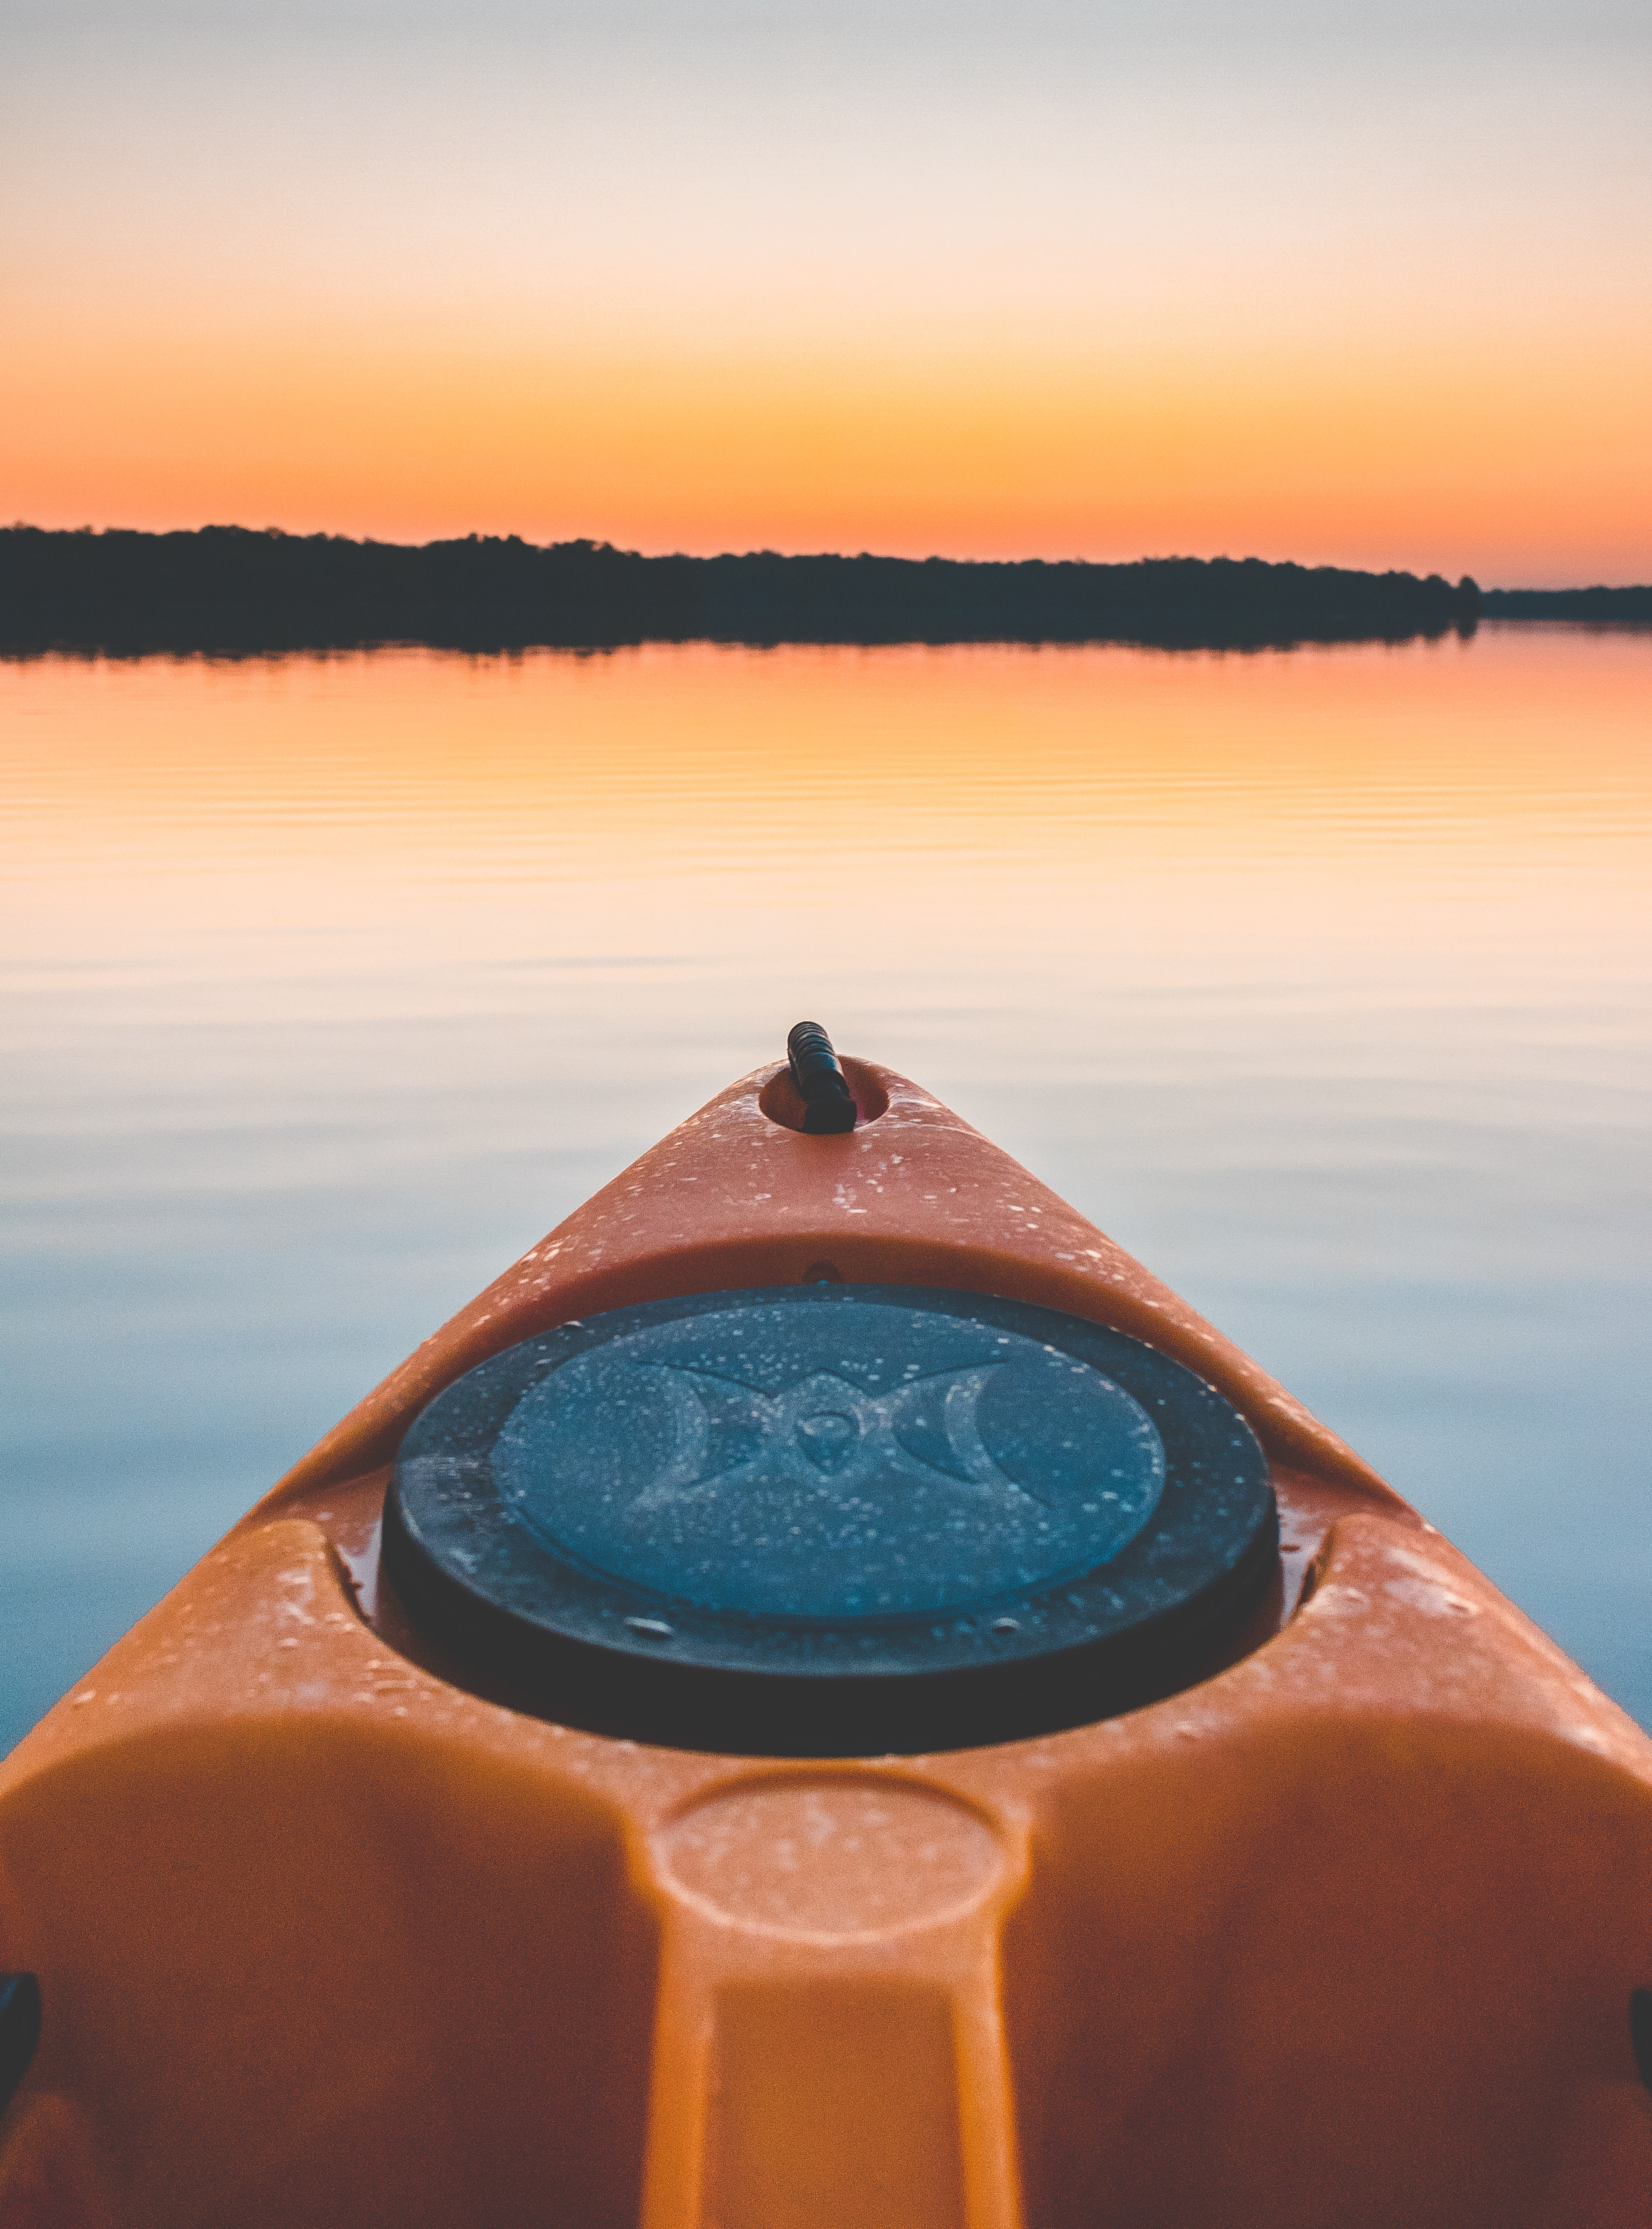 Front point of an orange and black kayak on calm water, trees in the distance, at sunset